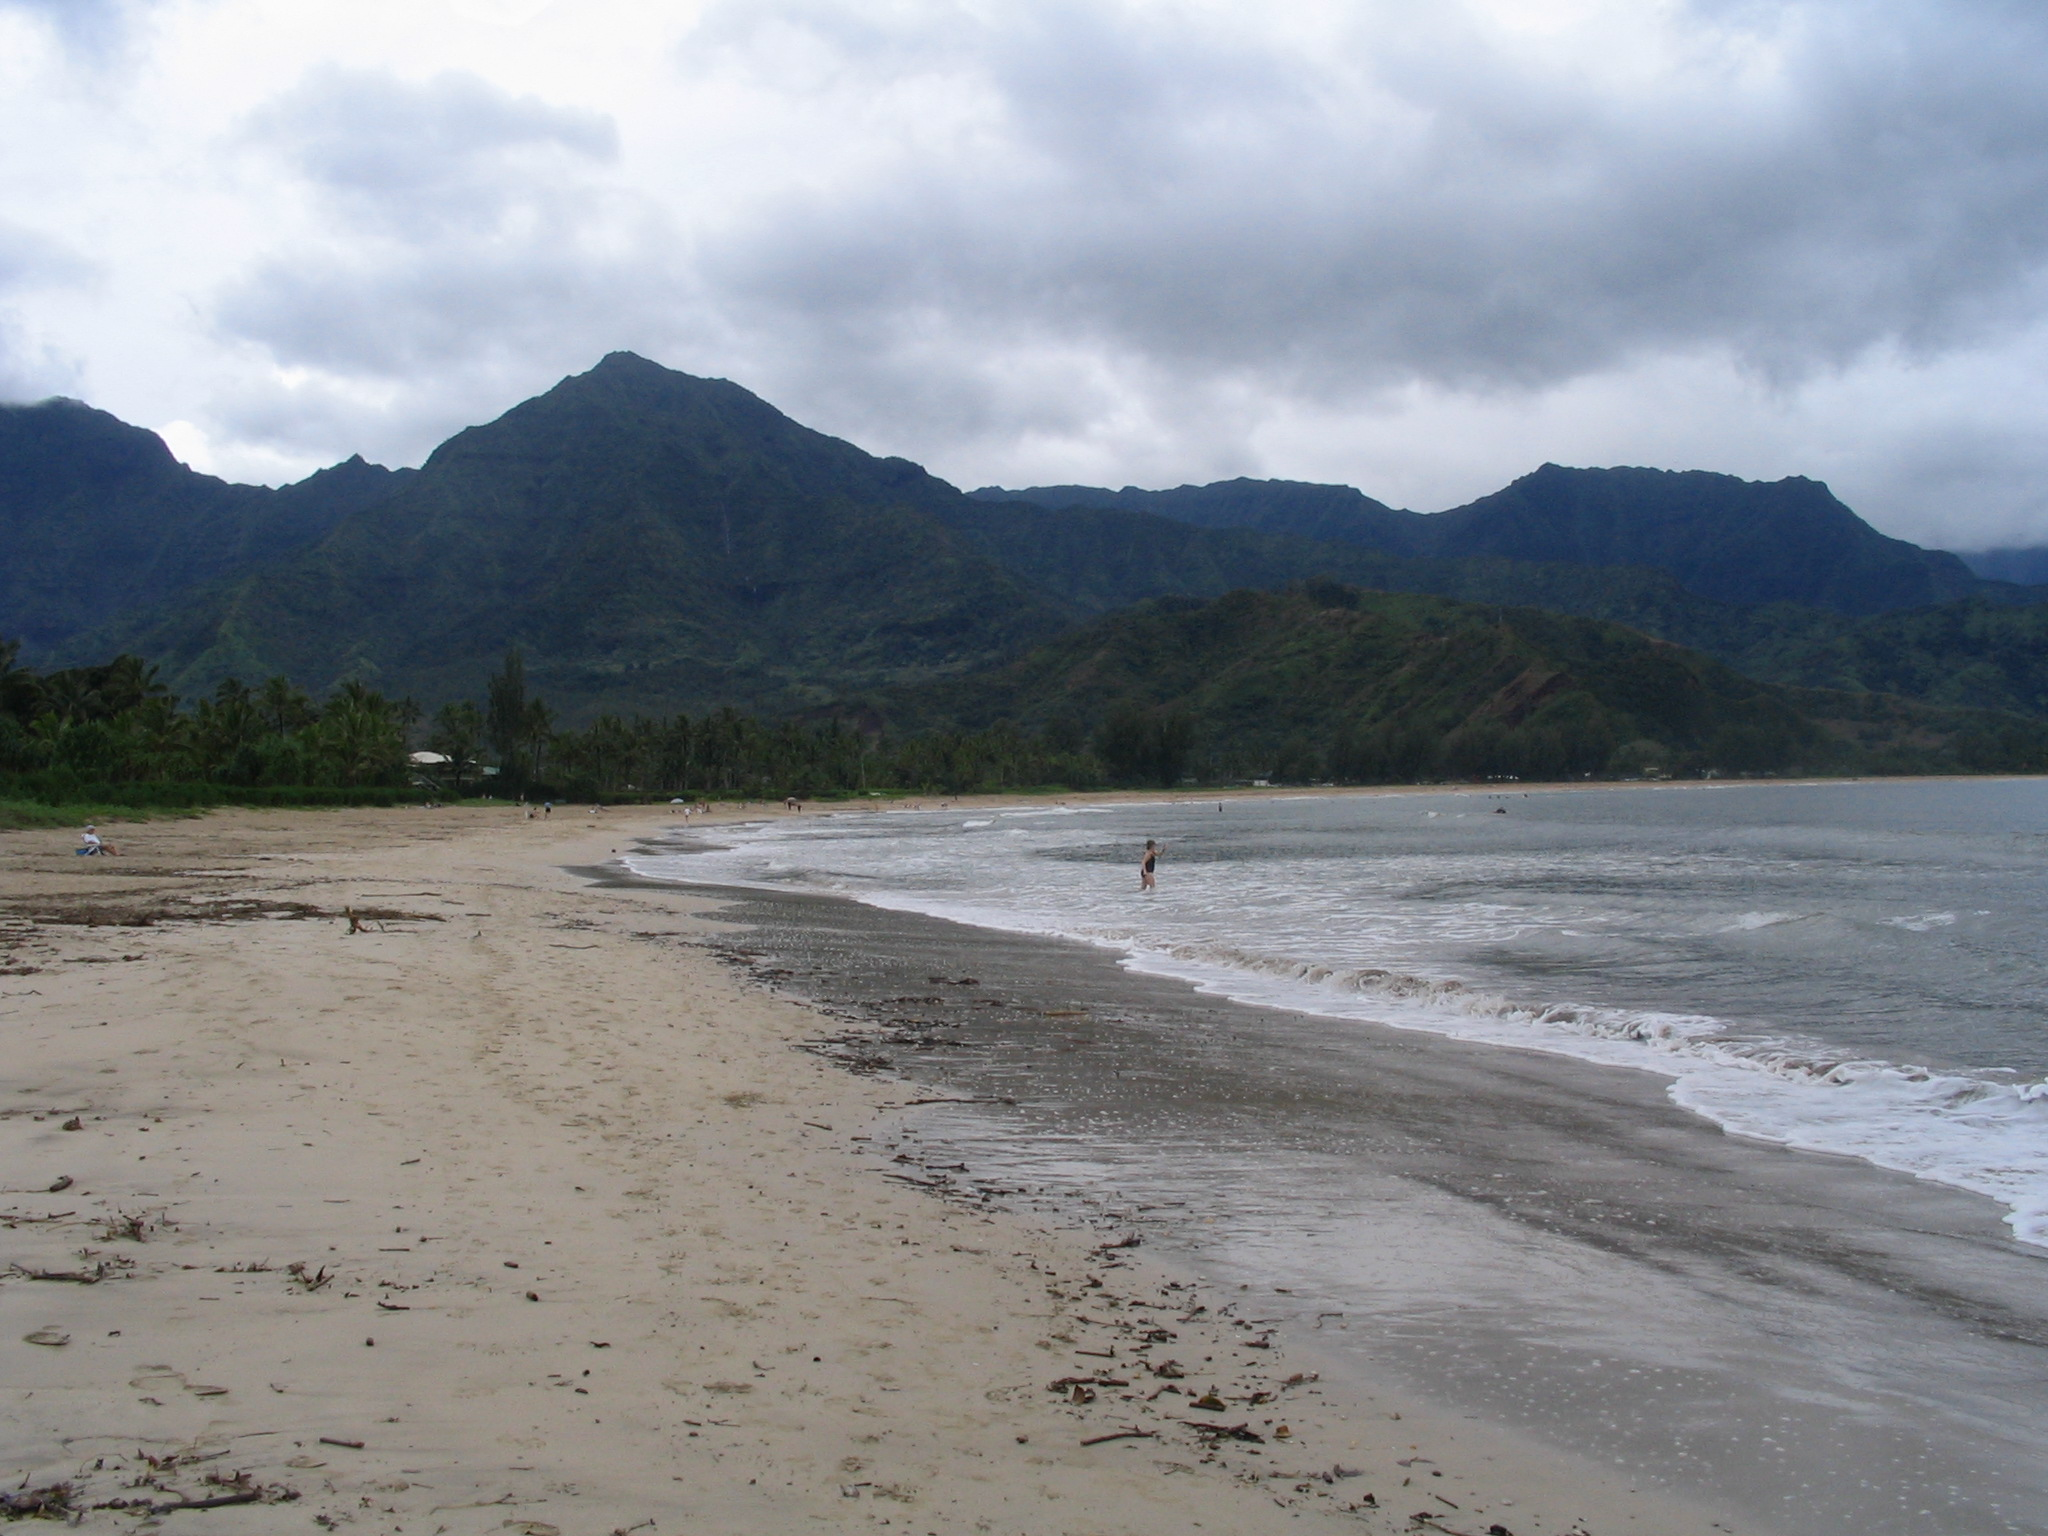 The beach at Hanalei Bay, Kauai, HI: www.worldsbestbeachtowns.com/beachtowns/hanalei-hawaiian+islands+...